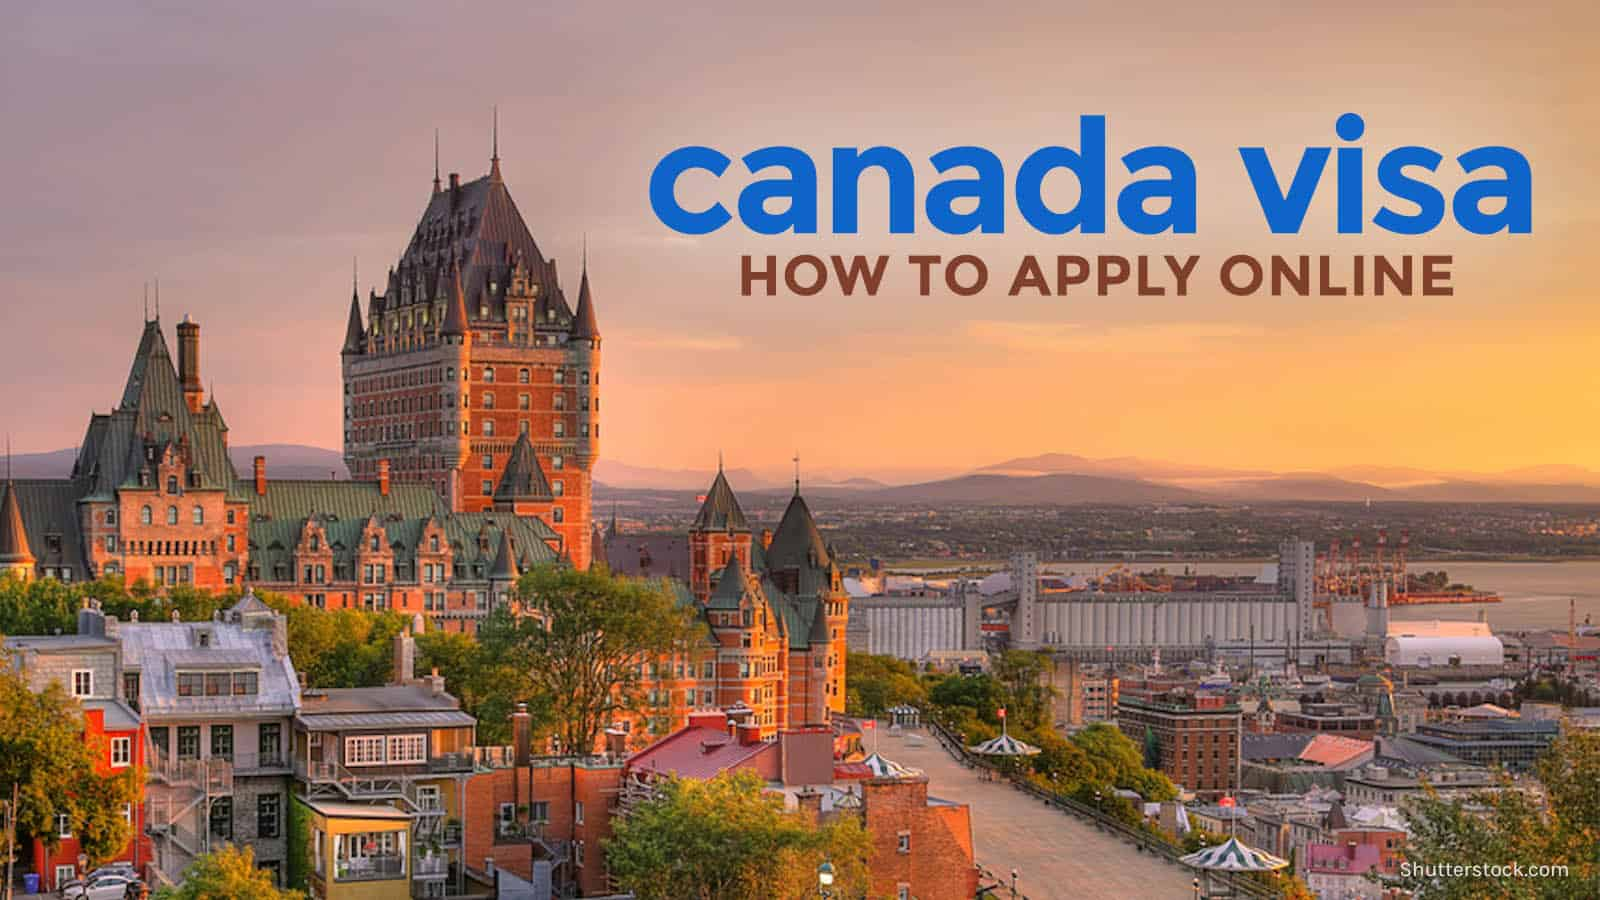 online visa application for canada from india